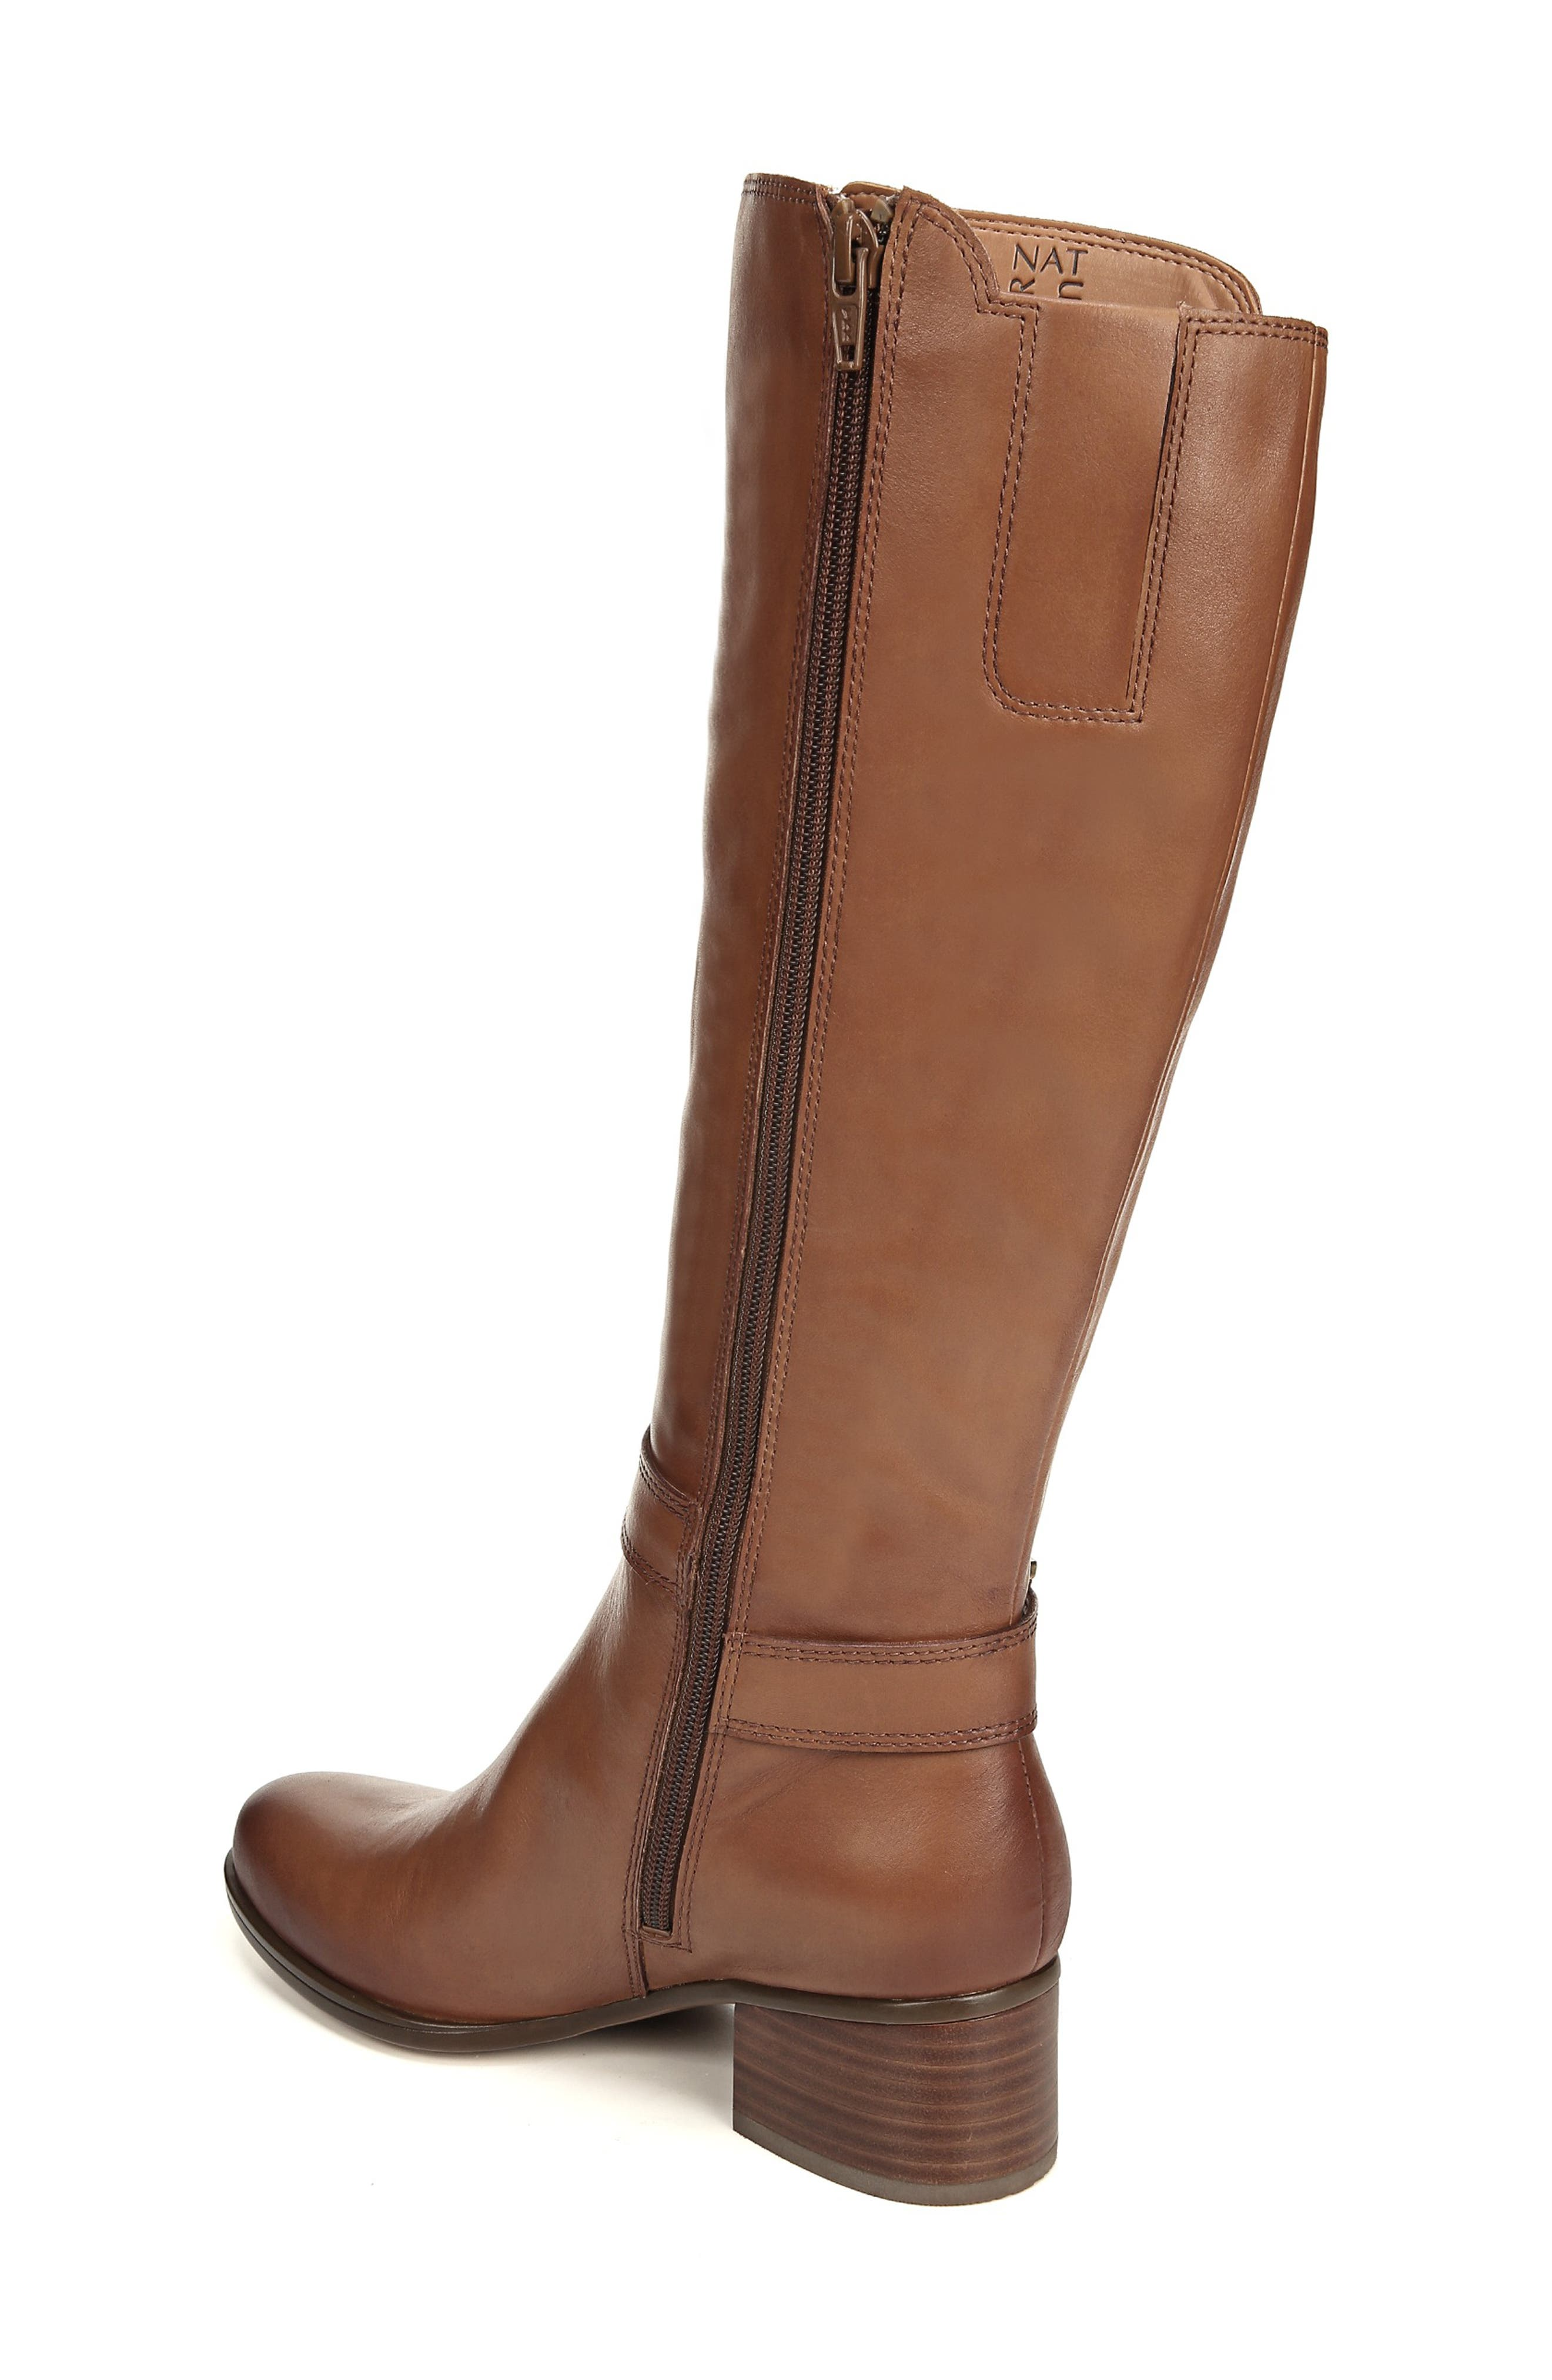 NATURALIZER, Dane Knee High Riding Boot, Alternate thumbnail 2, color, MAPLE LEATHER